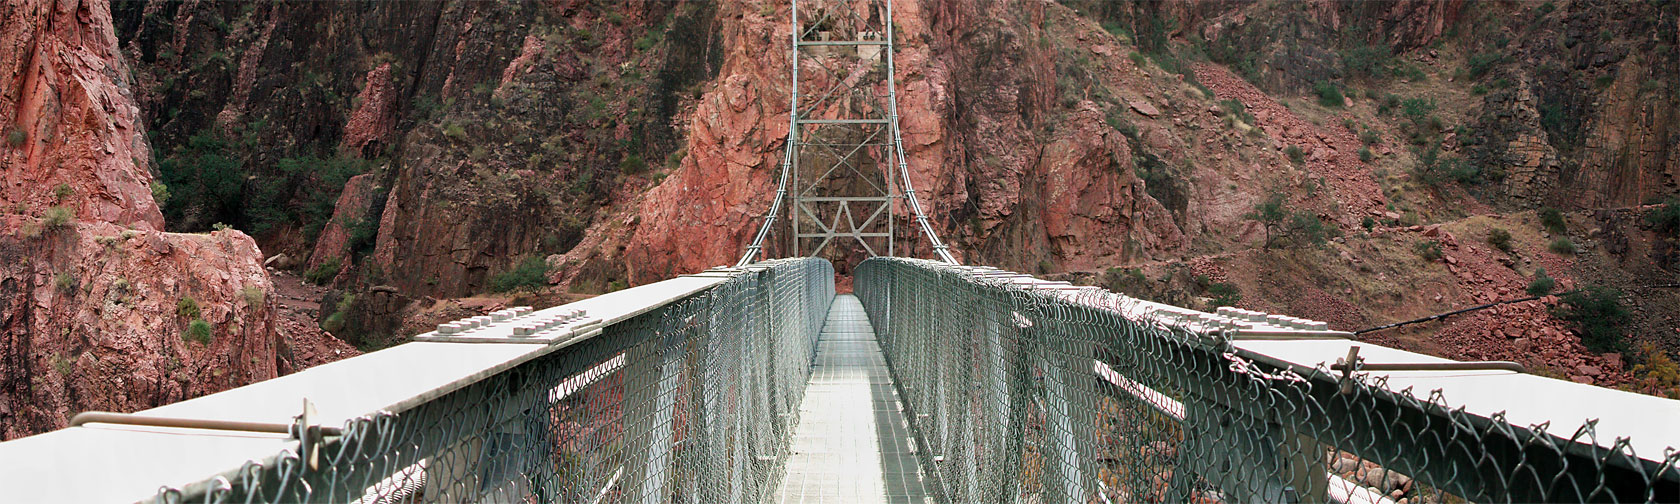 Silver Bridge, Grand Canyon Arizona